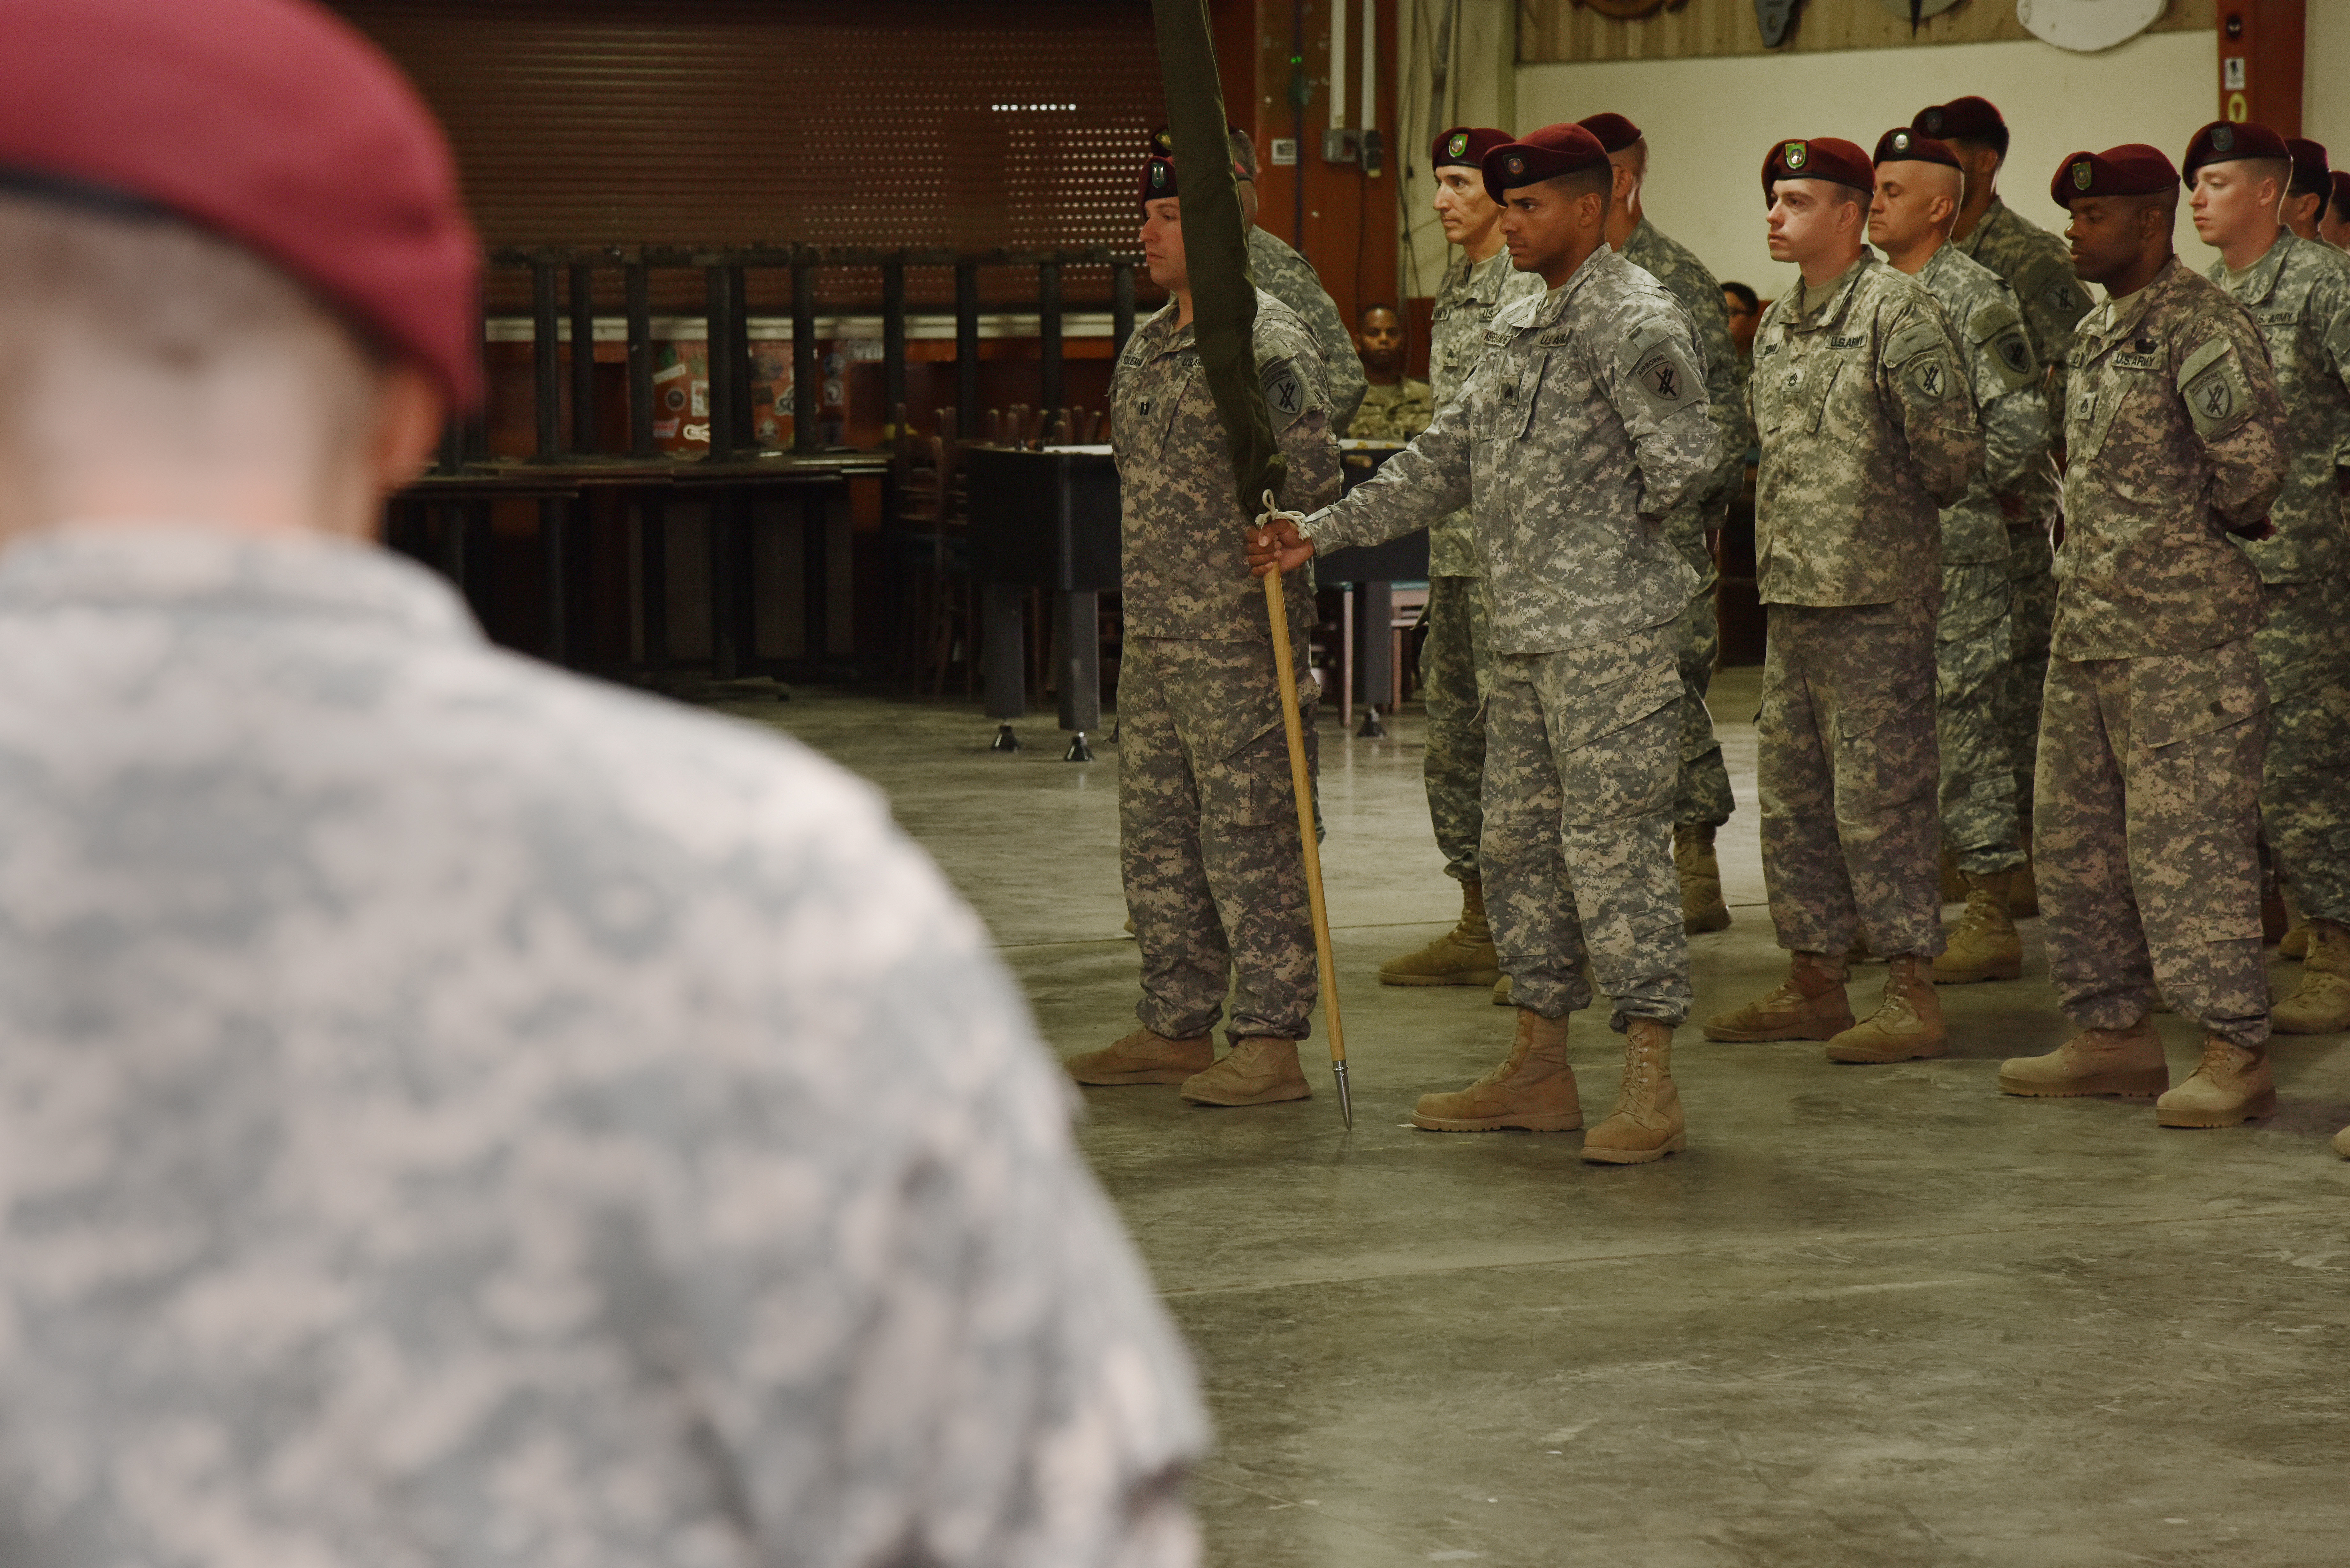 The 404th Civil Affairs Battalion soldiers listen to U.S. Army Lt. Col. Timothy Brennan, former Army Civil Affairs Battalion commander, give a speech during a transfer of authority ceremony June 22, 2015, in Djibouti.  The 415th CAB soldiers will take over the responsibilities and tasks that the outgoing CAB performed during their time assigned to Combined Joint Task Force-Horn of Africa.  (U.S. Air Force photo by Staff Sgt. Maria Bowman)